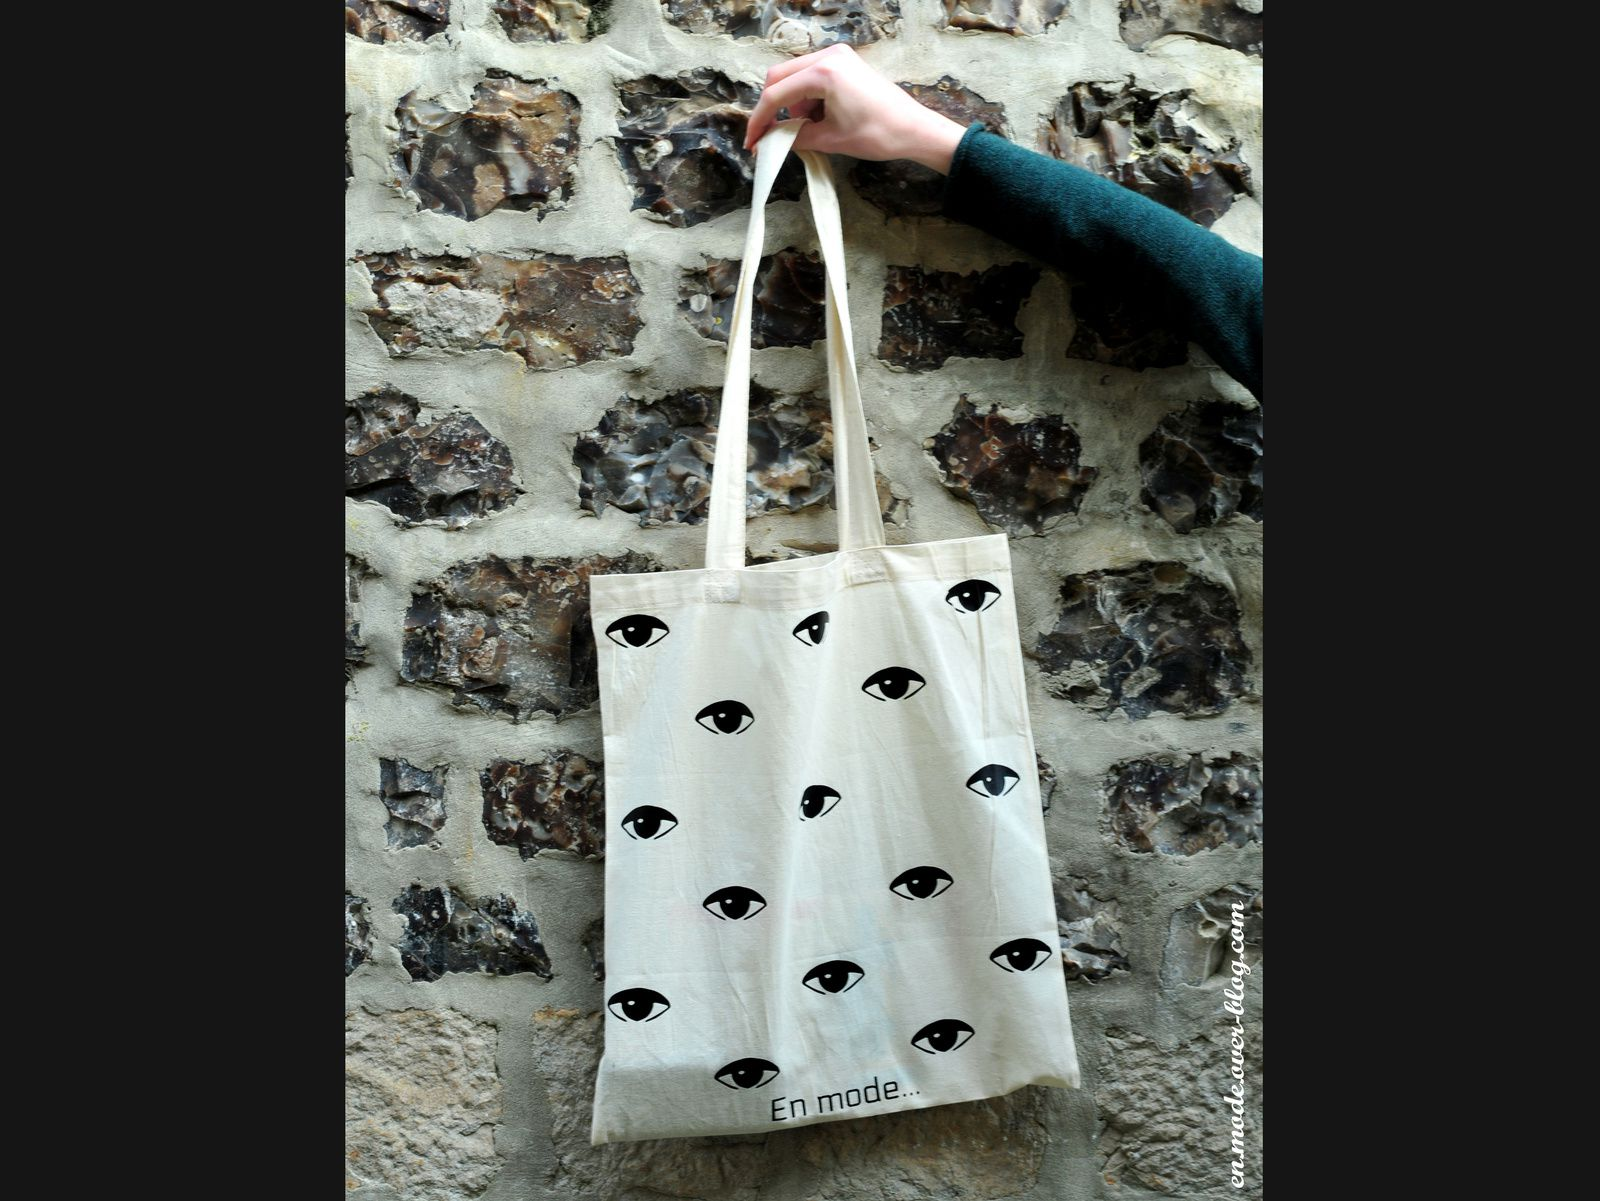 En mode... Tote bag inspiration Kenzo